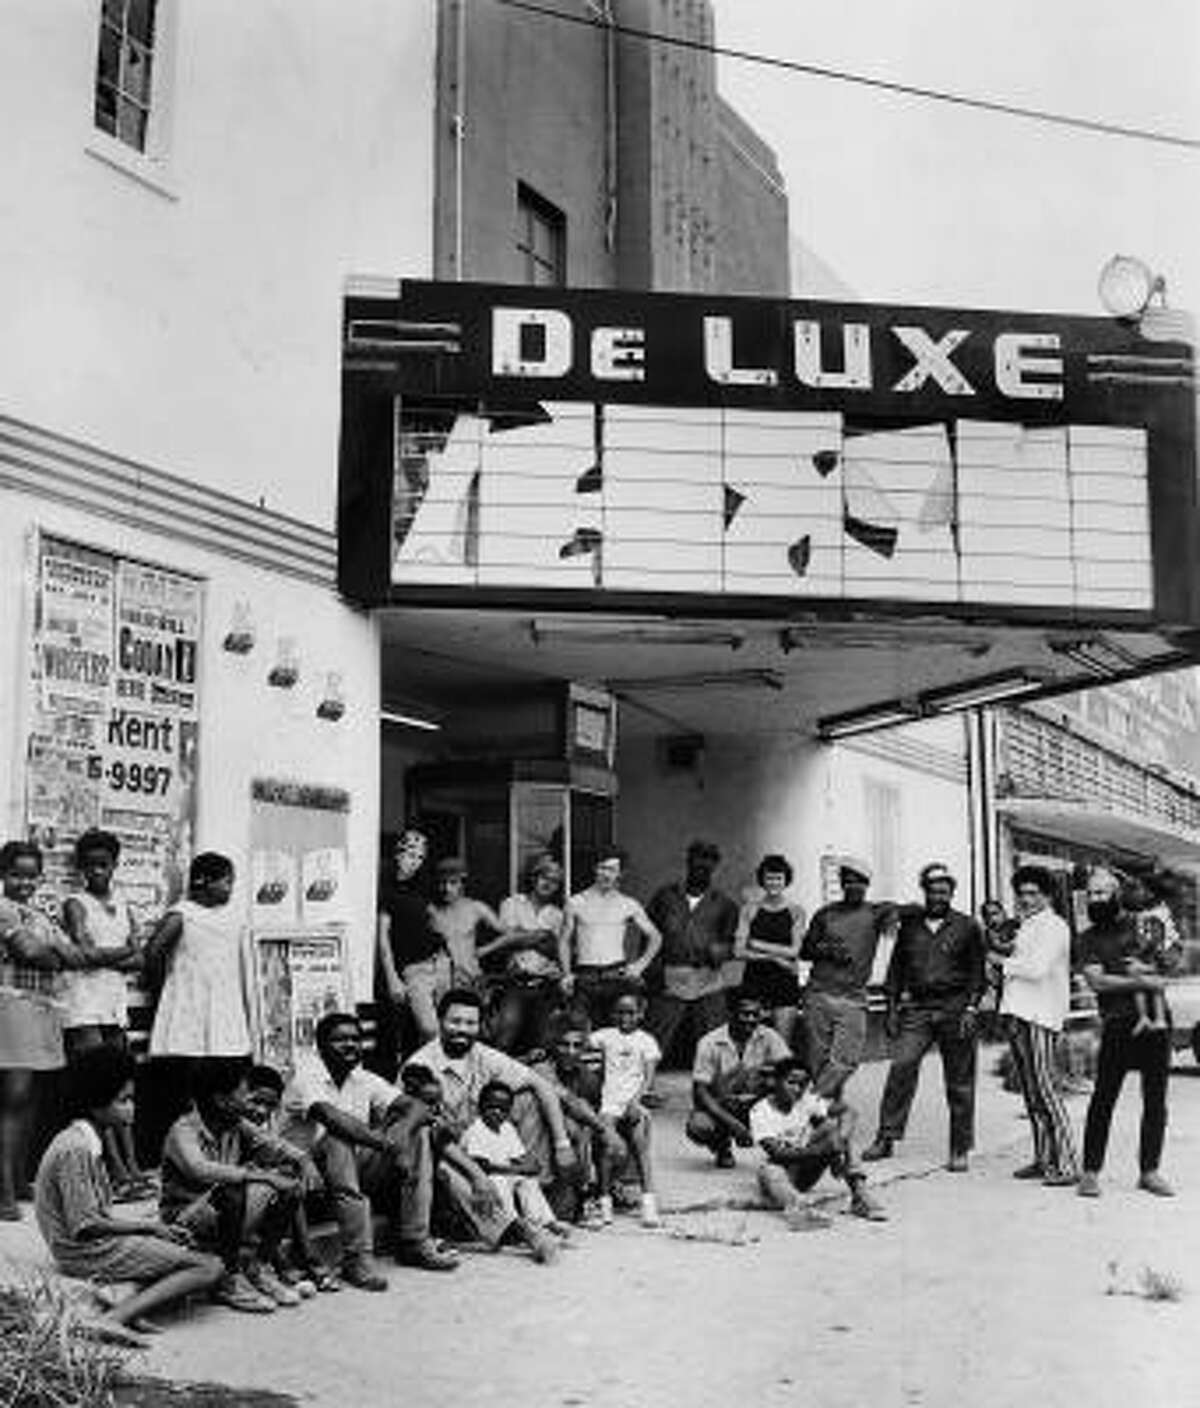 Menil staff and neighborhood volunteers, including community coordinator Mickey Leland and Menil exhibiton assistant Helen Winkler, standing second and fifth from right, gather in front of the De Luxe Theater, which they renovated in 13 days for an exhibit, in 1971.